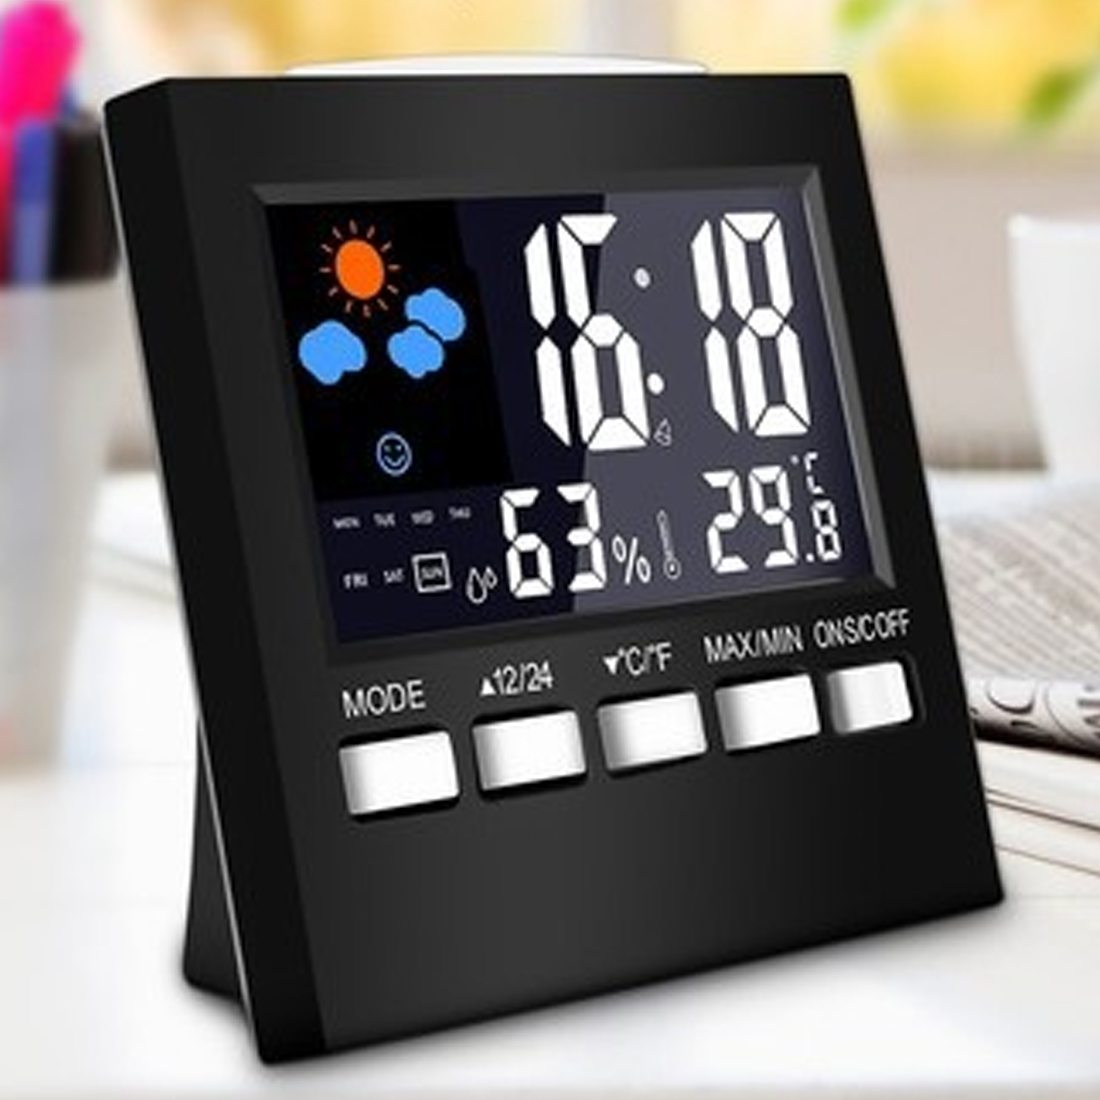 New Digital Thermometer Hygrometer Colorful LCD termometer Clock Alarm Snooze Function Calendar Weather Forecast Display digital lcd thermometer projection weather station temperature calendar display dual alarm clock usb charging function